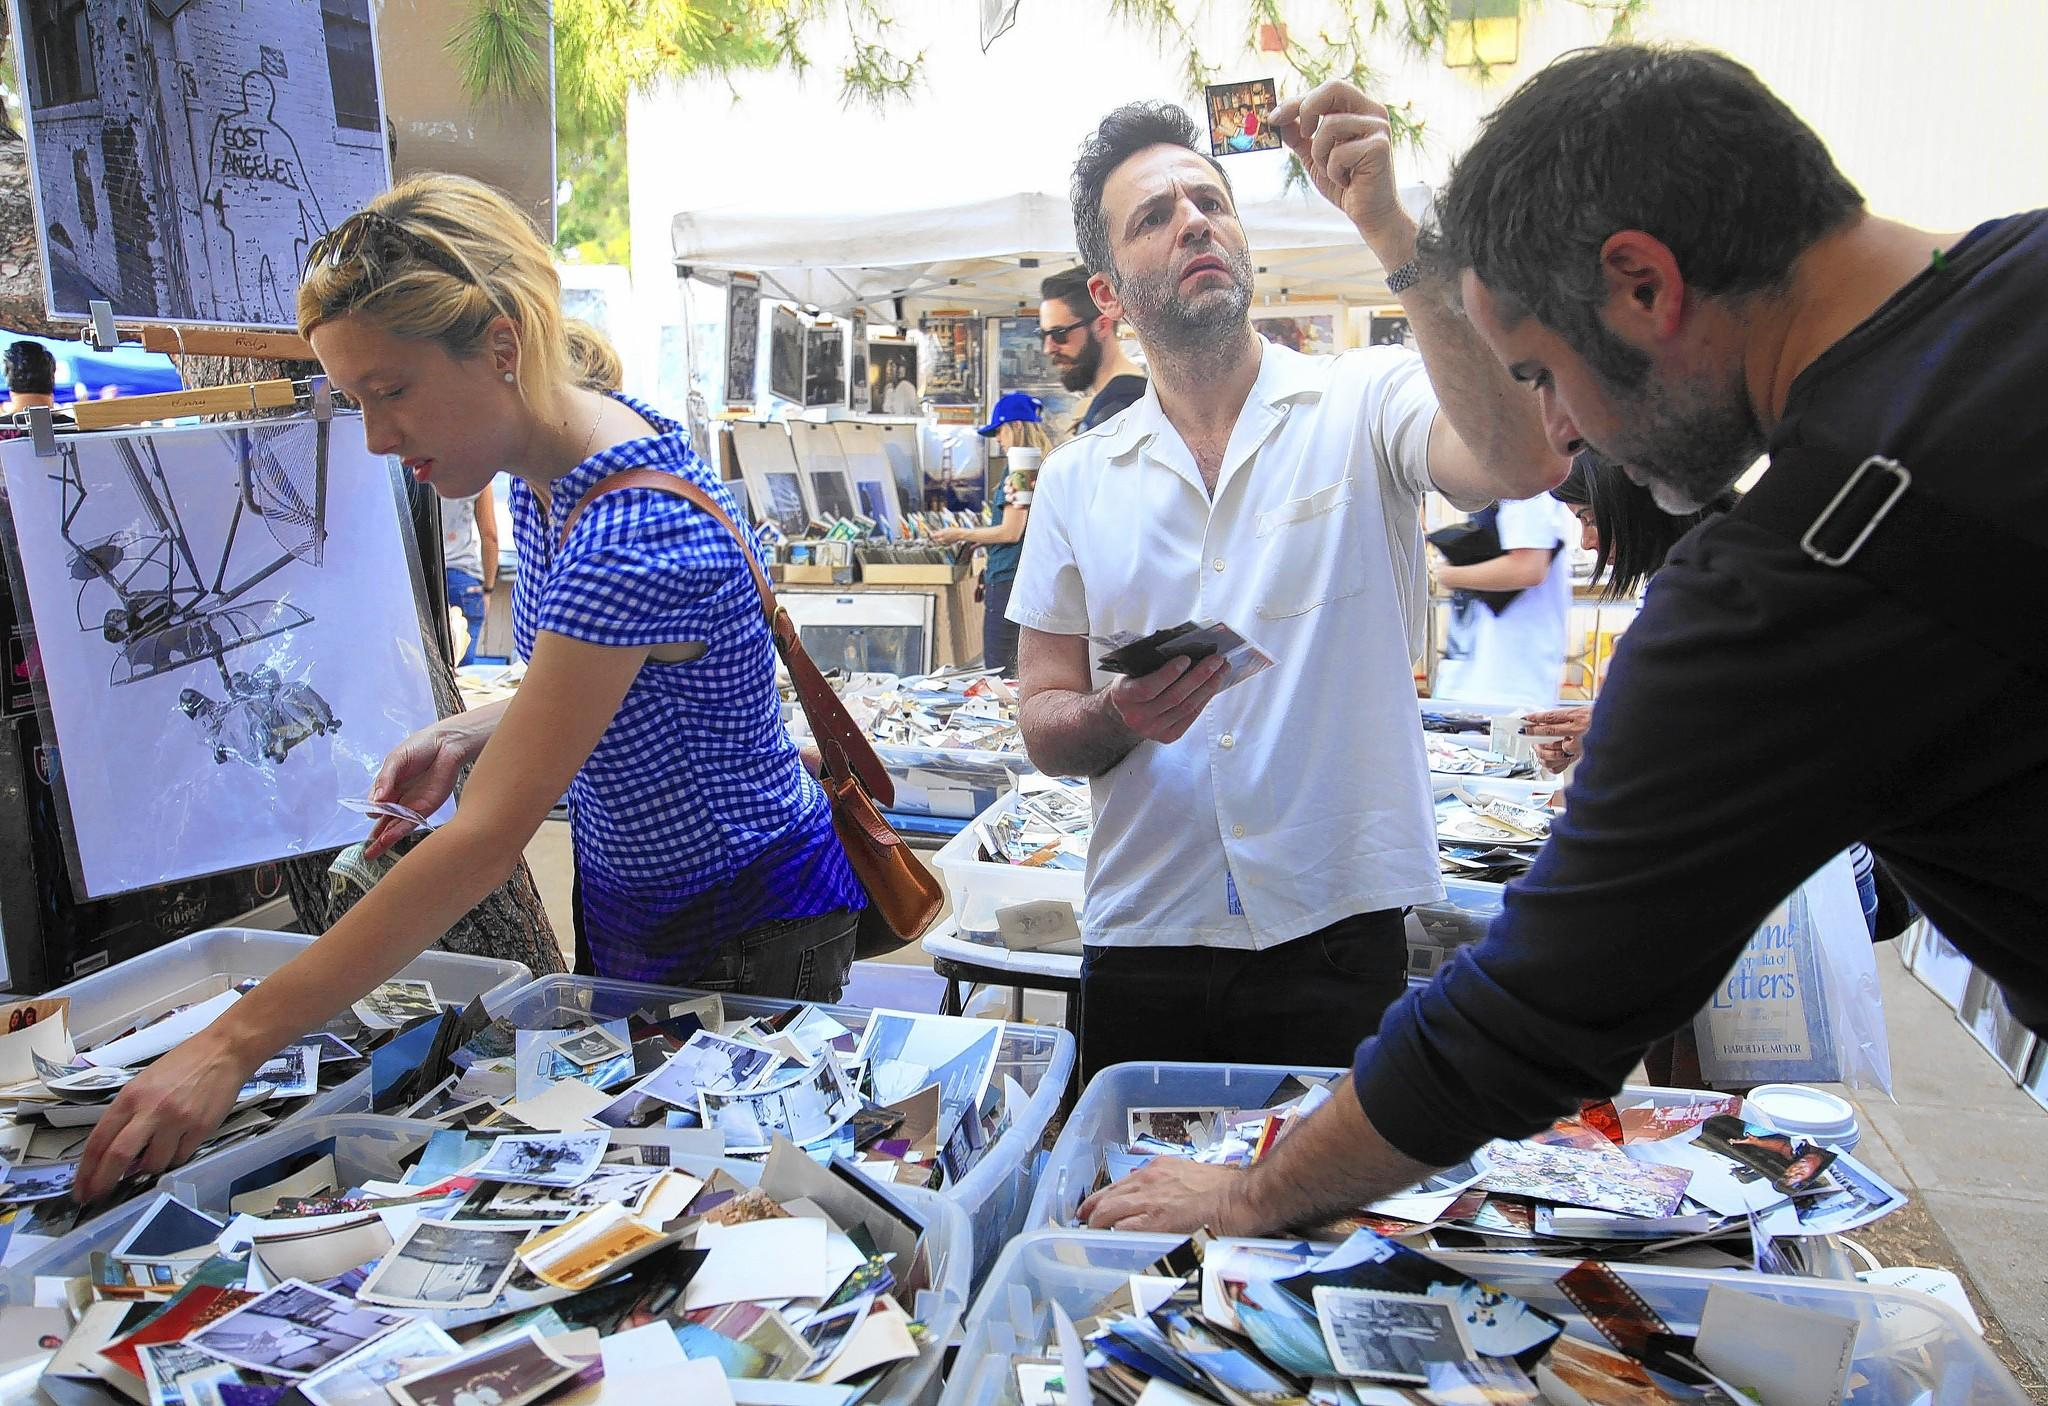 An eclectic aassortment of items awaits visitors to the Melrose Trading Post at Fairfax High School. The flea market includes artwork, glass and, for intrigued shoppers like Gustavo Salmeron, center, bins full of castoff photographs.